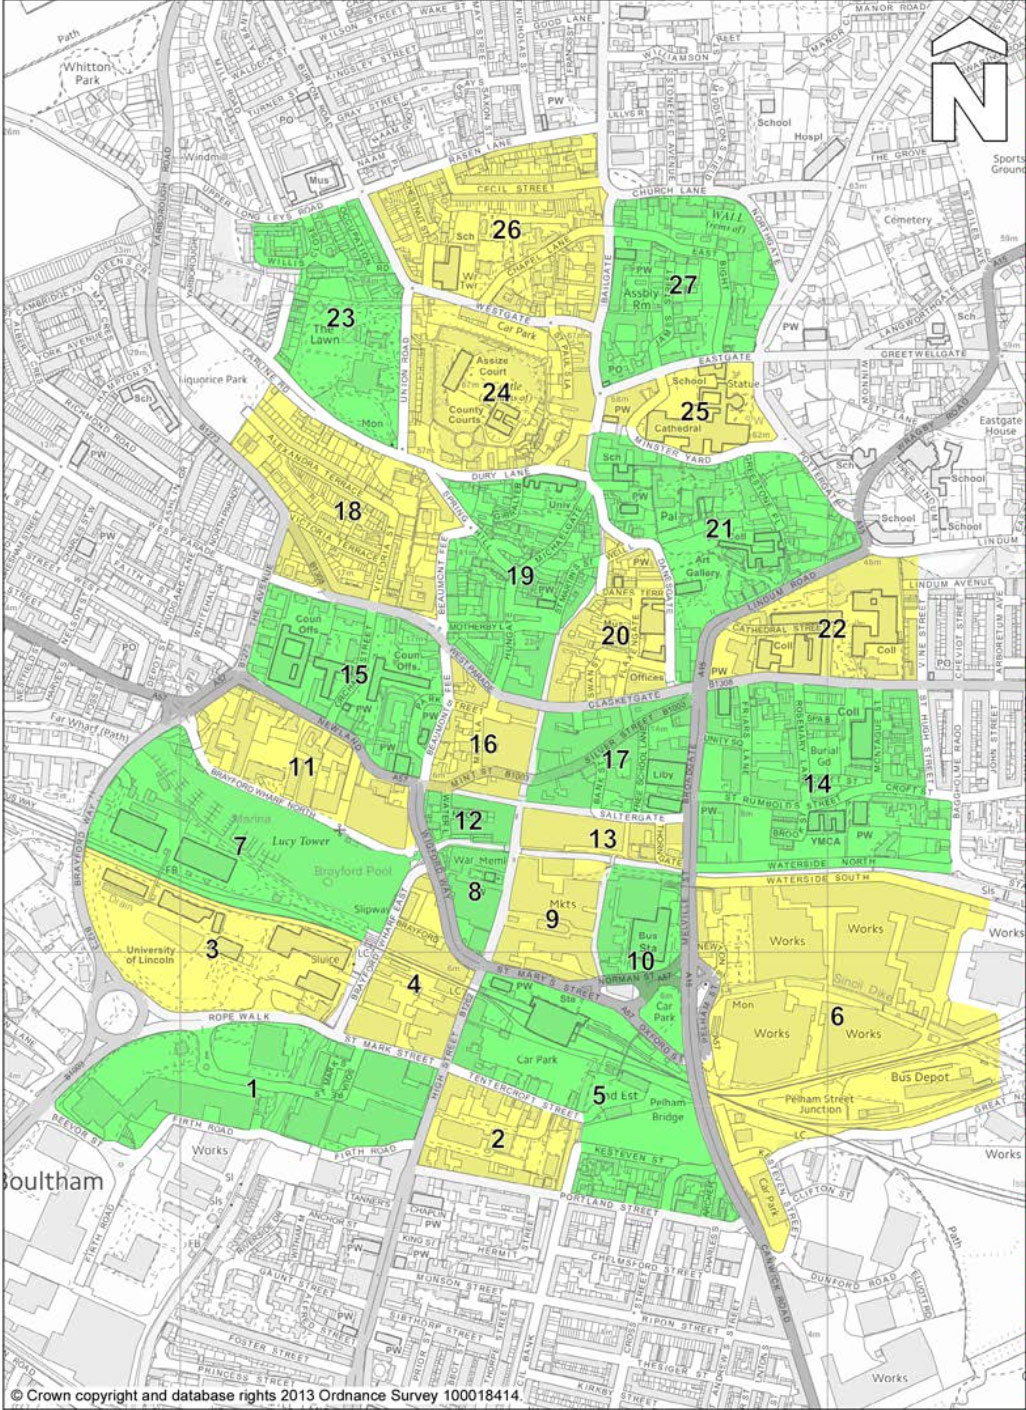 The Lincoln evacuation zoning system. Click to enlarge.